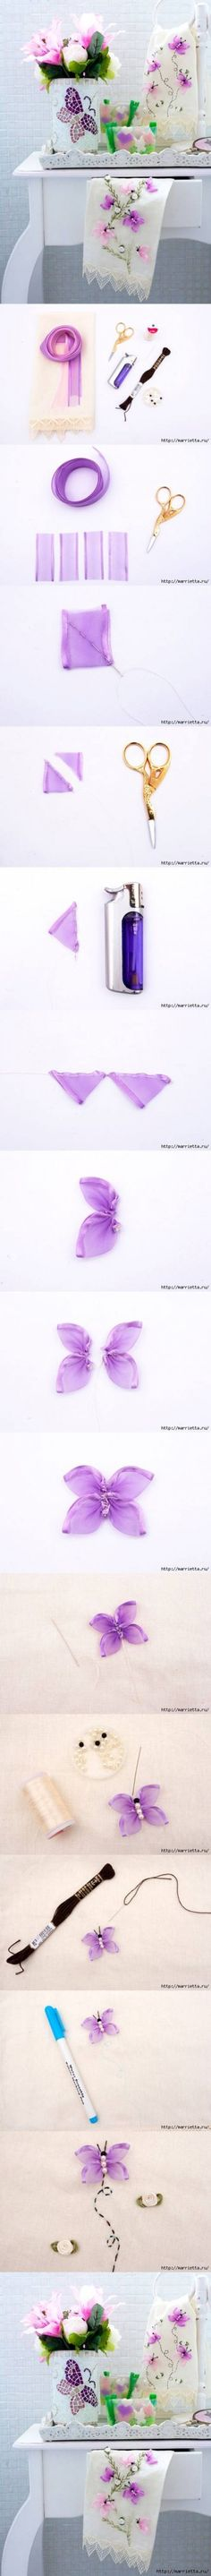 DIY Butterfly Hand Ribbon Embroidery DIY Butterfly Hand Ribbon Embroidery by diyforever Embroidery Designs, Ribbon Embroidery Tutorial, Silk Ribbon Embroidery, Cross Stitch Embroidery, Hand Embroidery, Embroidery Blanks, Ribbon Art, Diy Ribbon, Ribbon Crafts